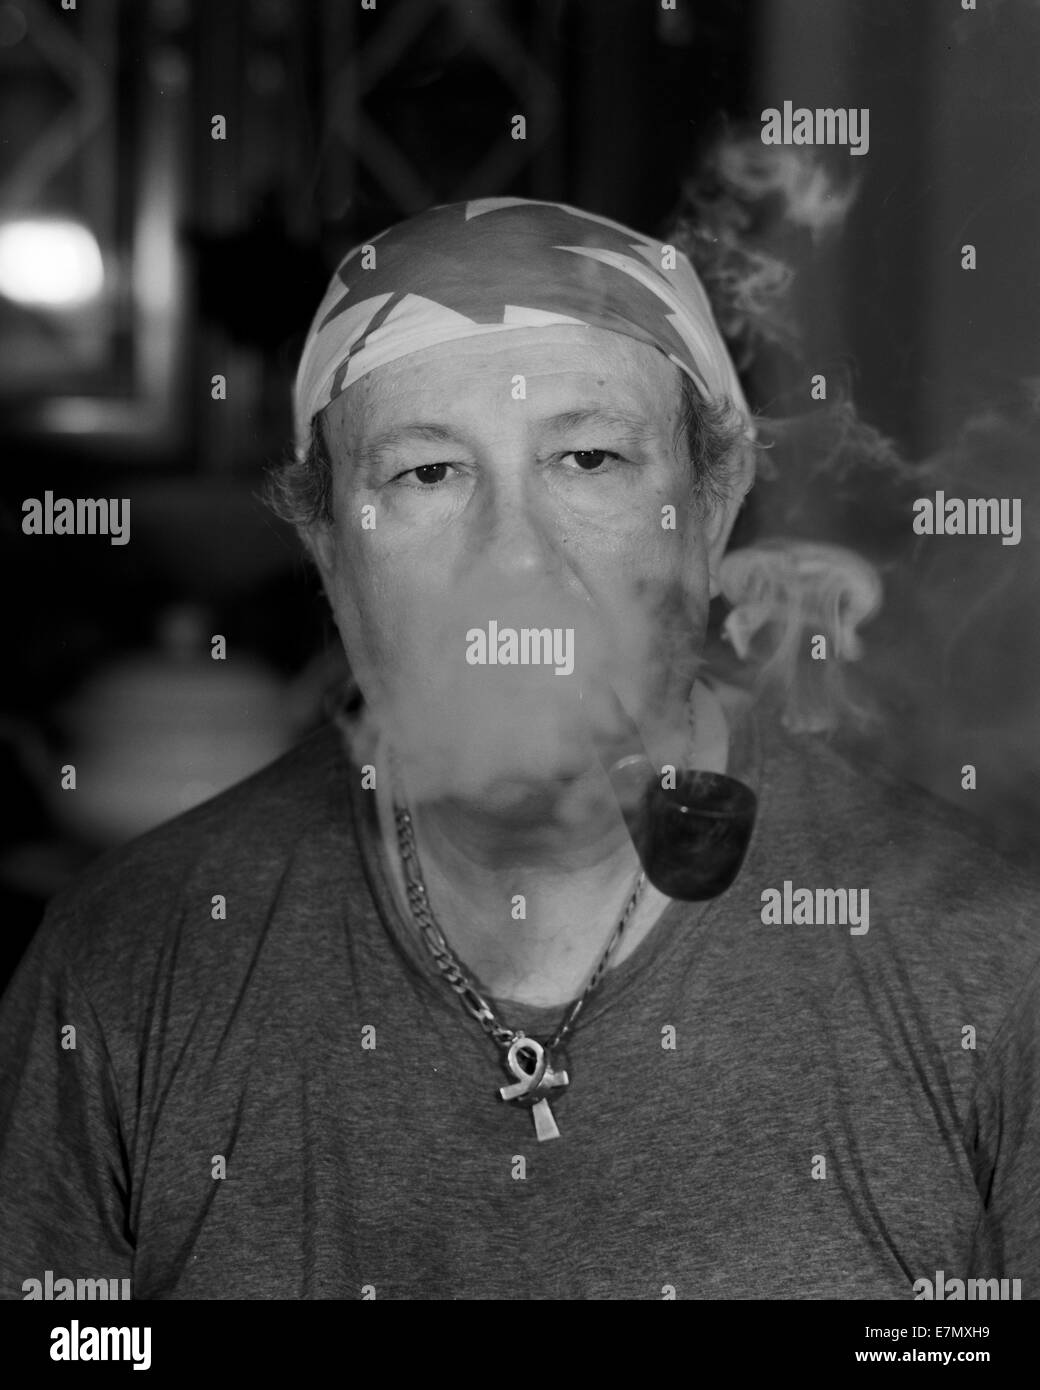 Bill Goldman is smoking his pipe and it smoke is all over him. - Stock Image